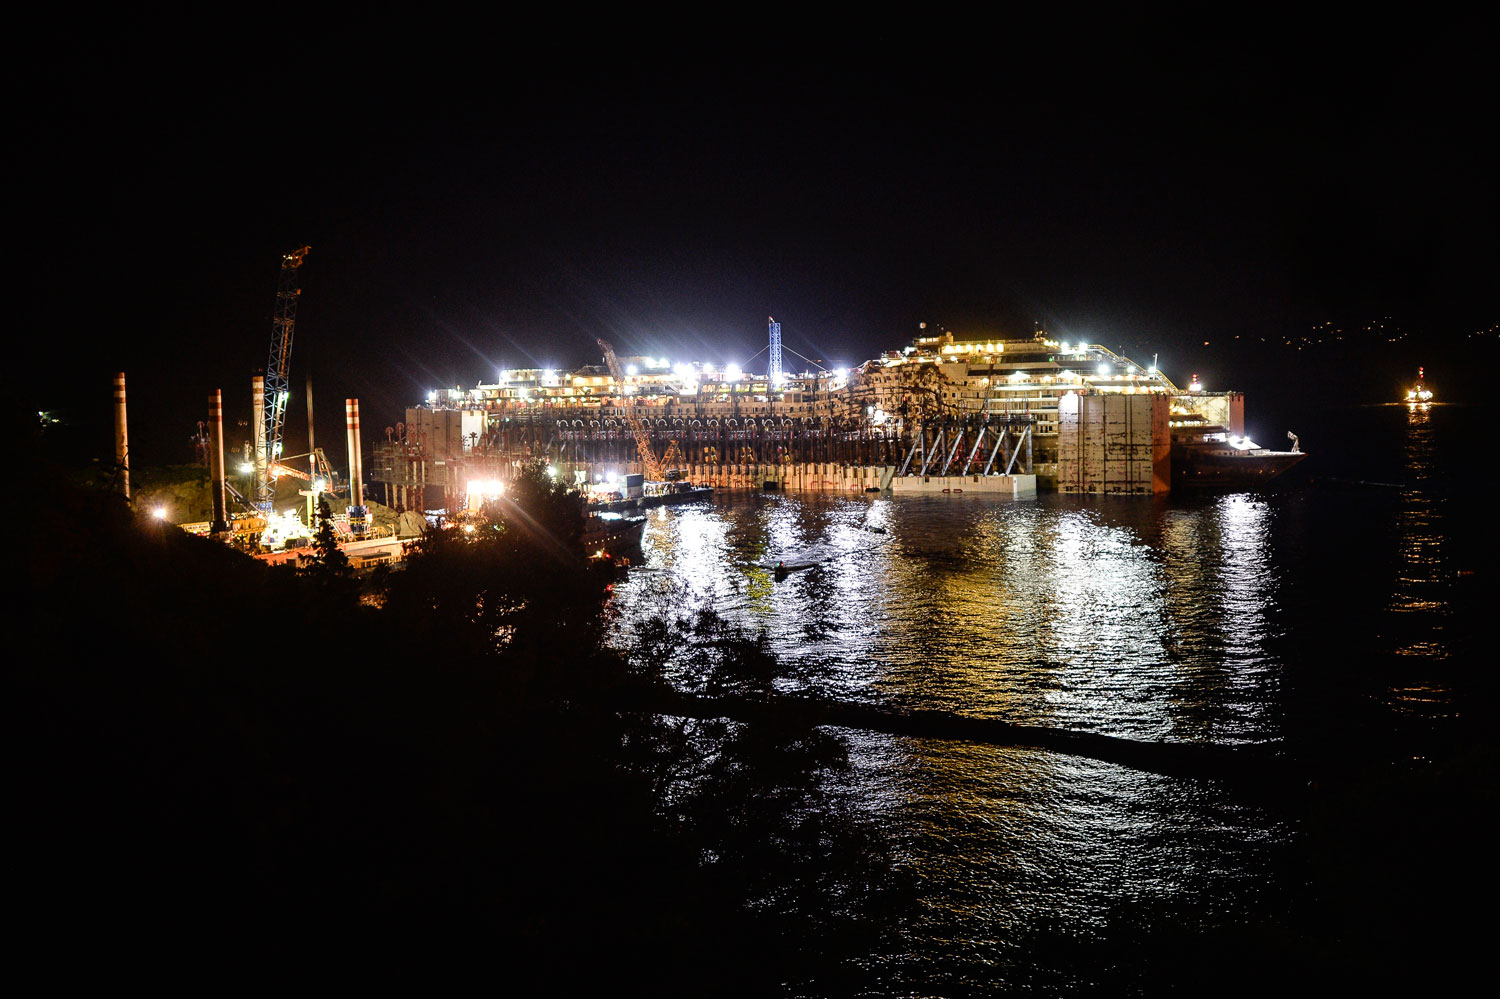 Costa Concordia in front of the harbour of Isola del Giglio, after it was refloated using air tanks attached to its sides, on July 23, 2014 off Giglio Island, Italy.